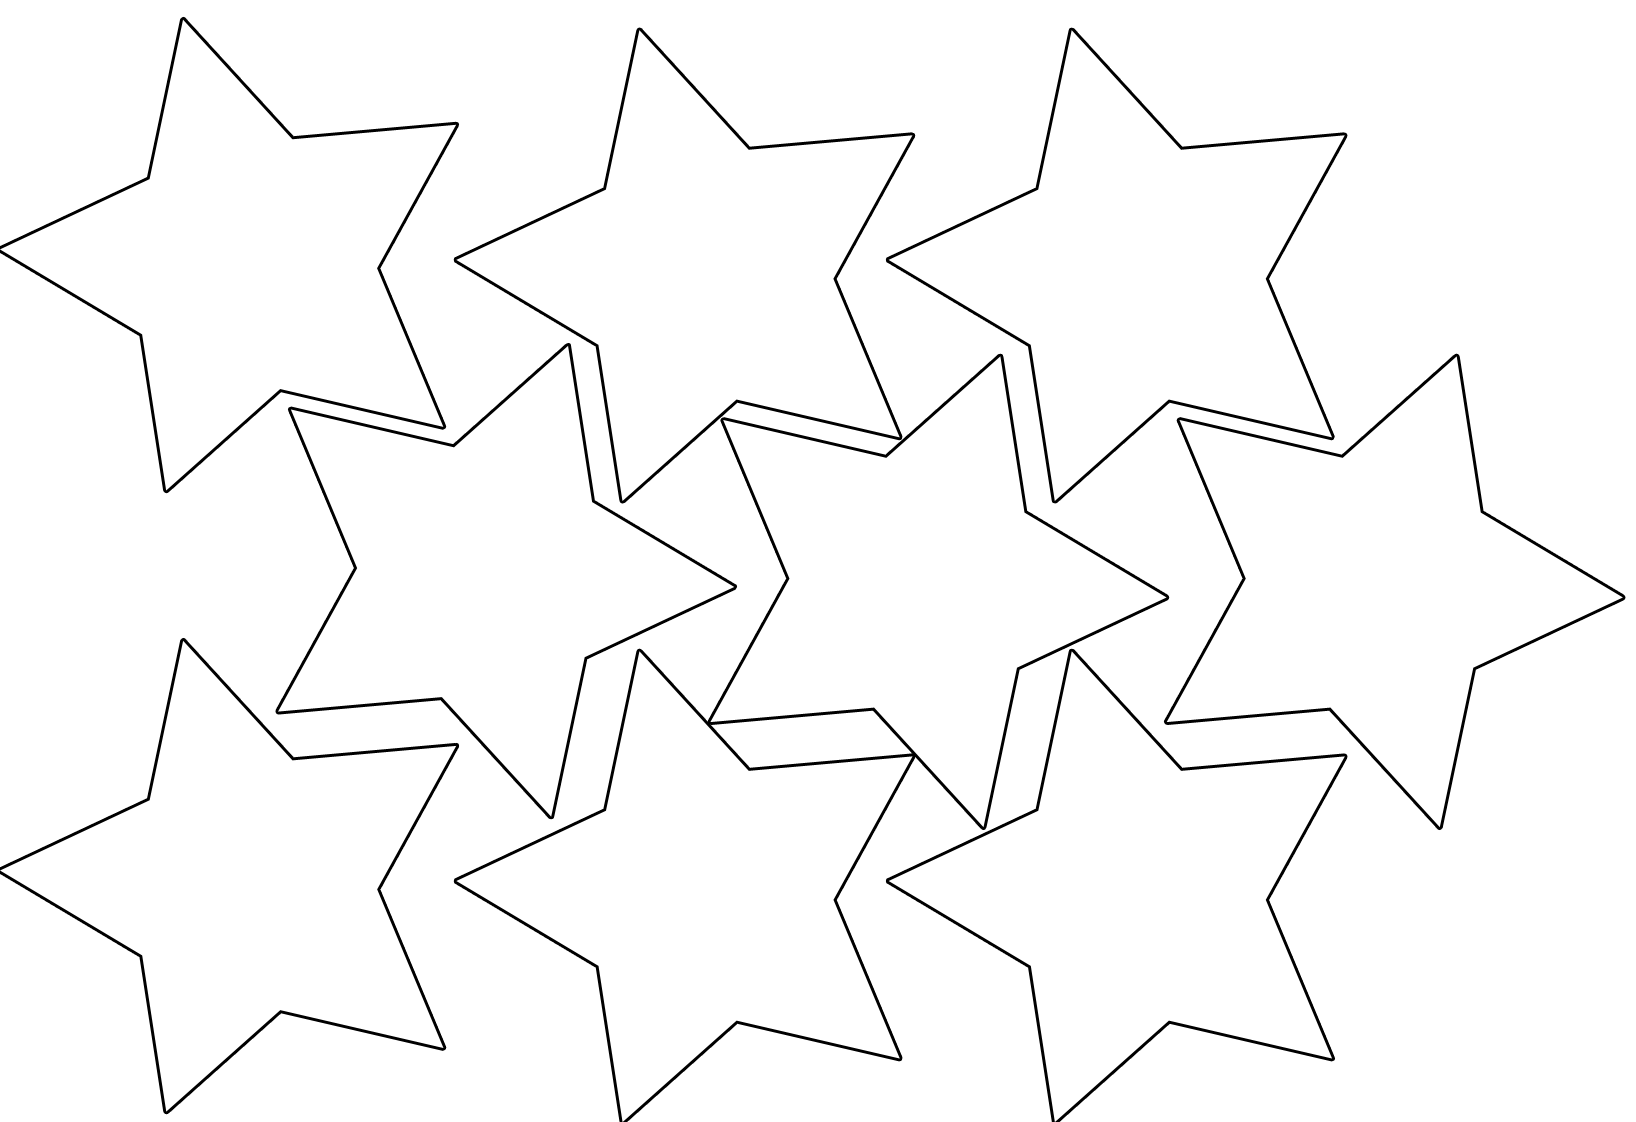 star printable 5 best images of small cut out star template printable star printable